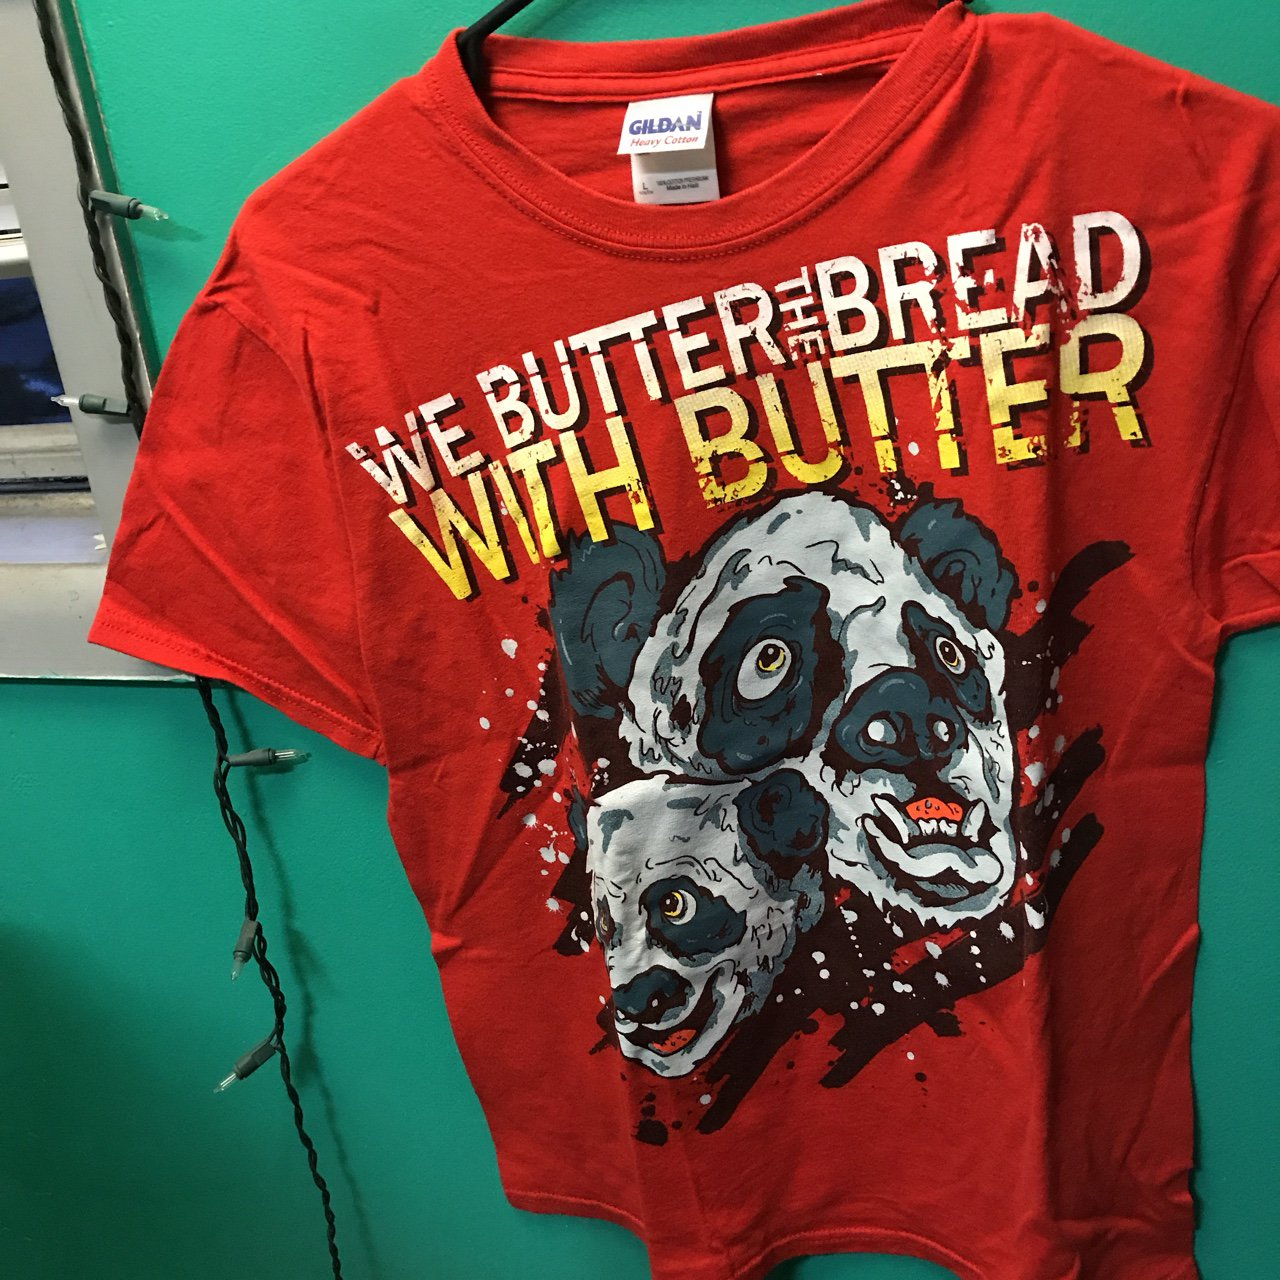 97552b543 We butter the bread with butter classic graphic tee. Worn or - Depop